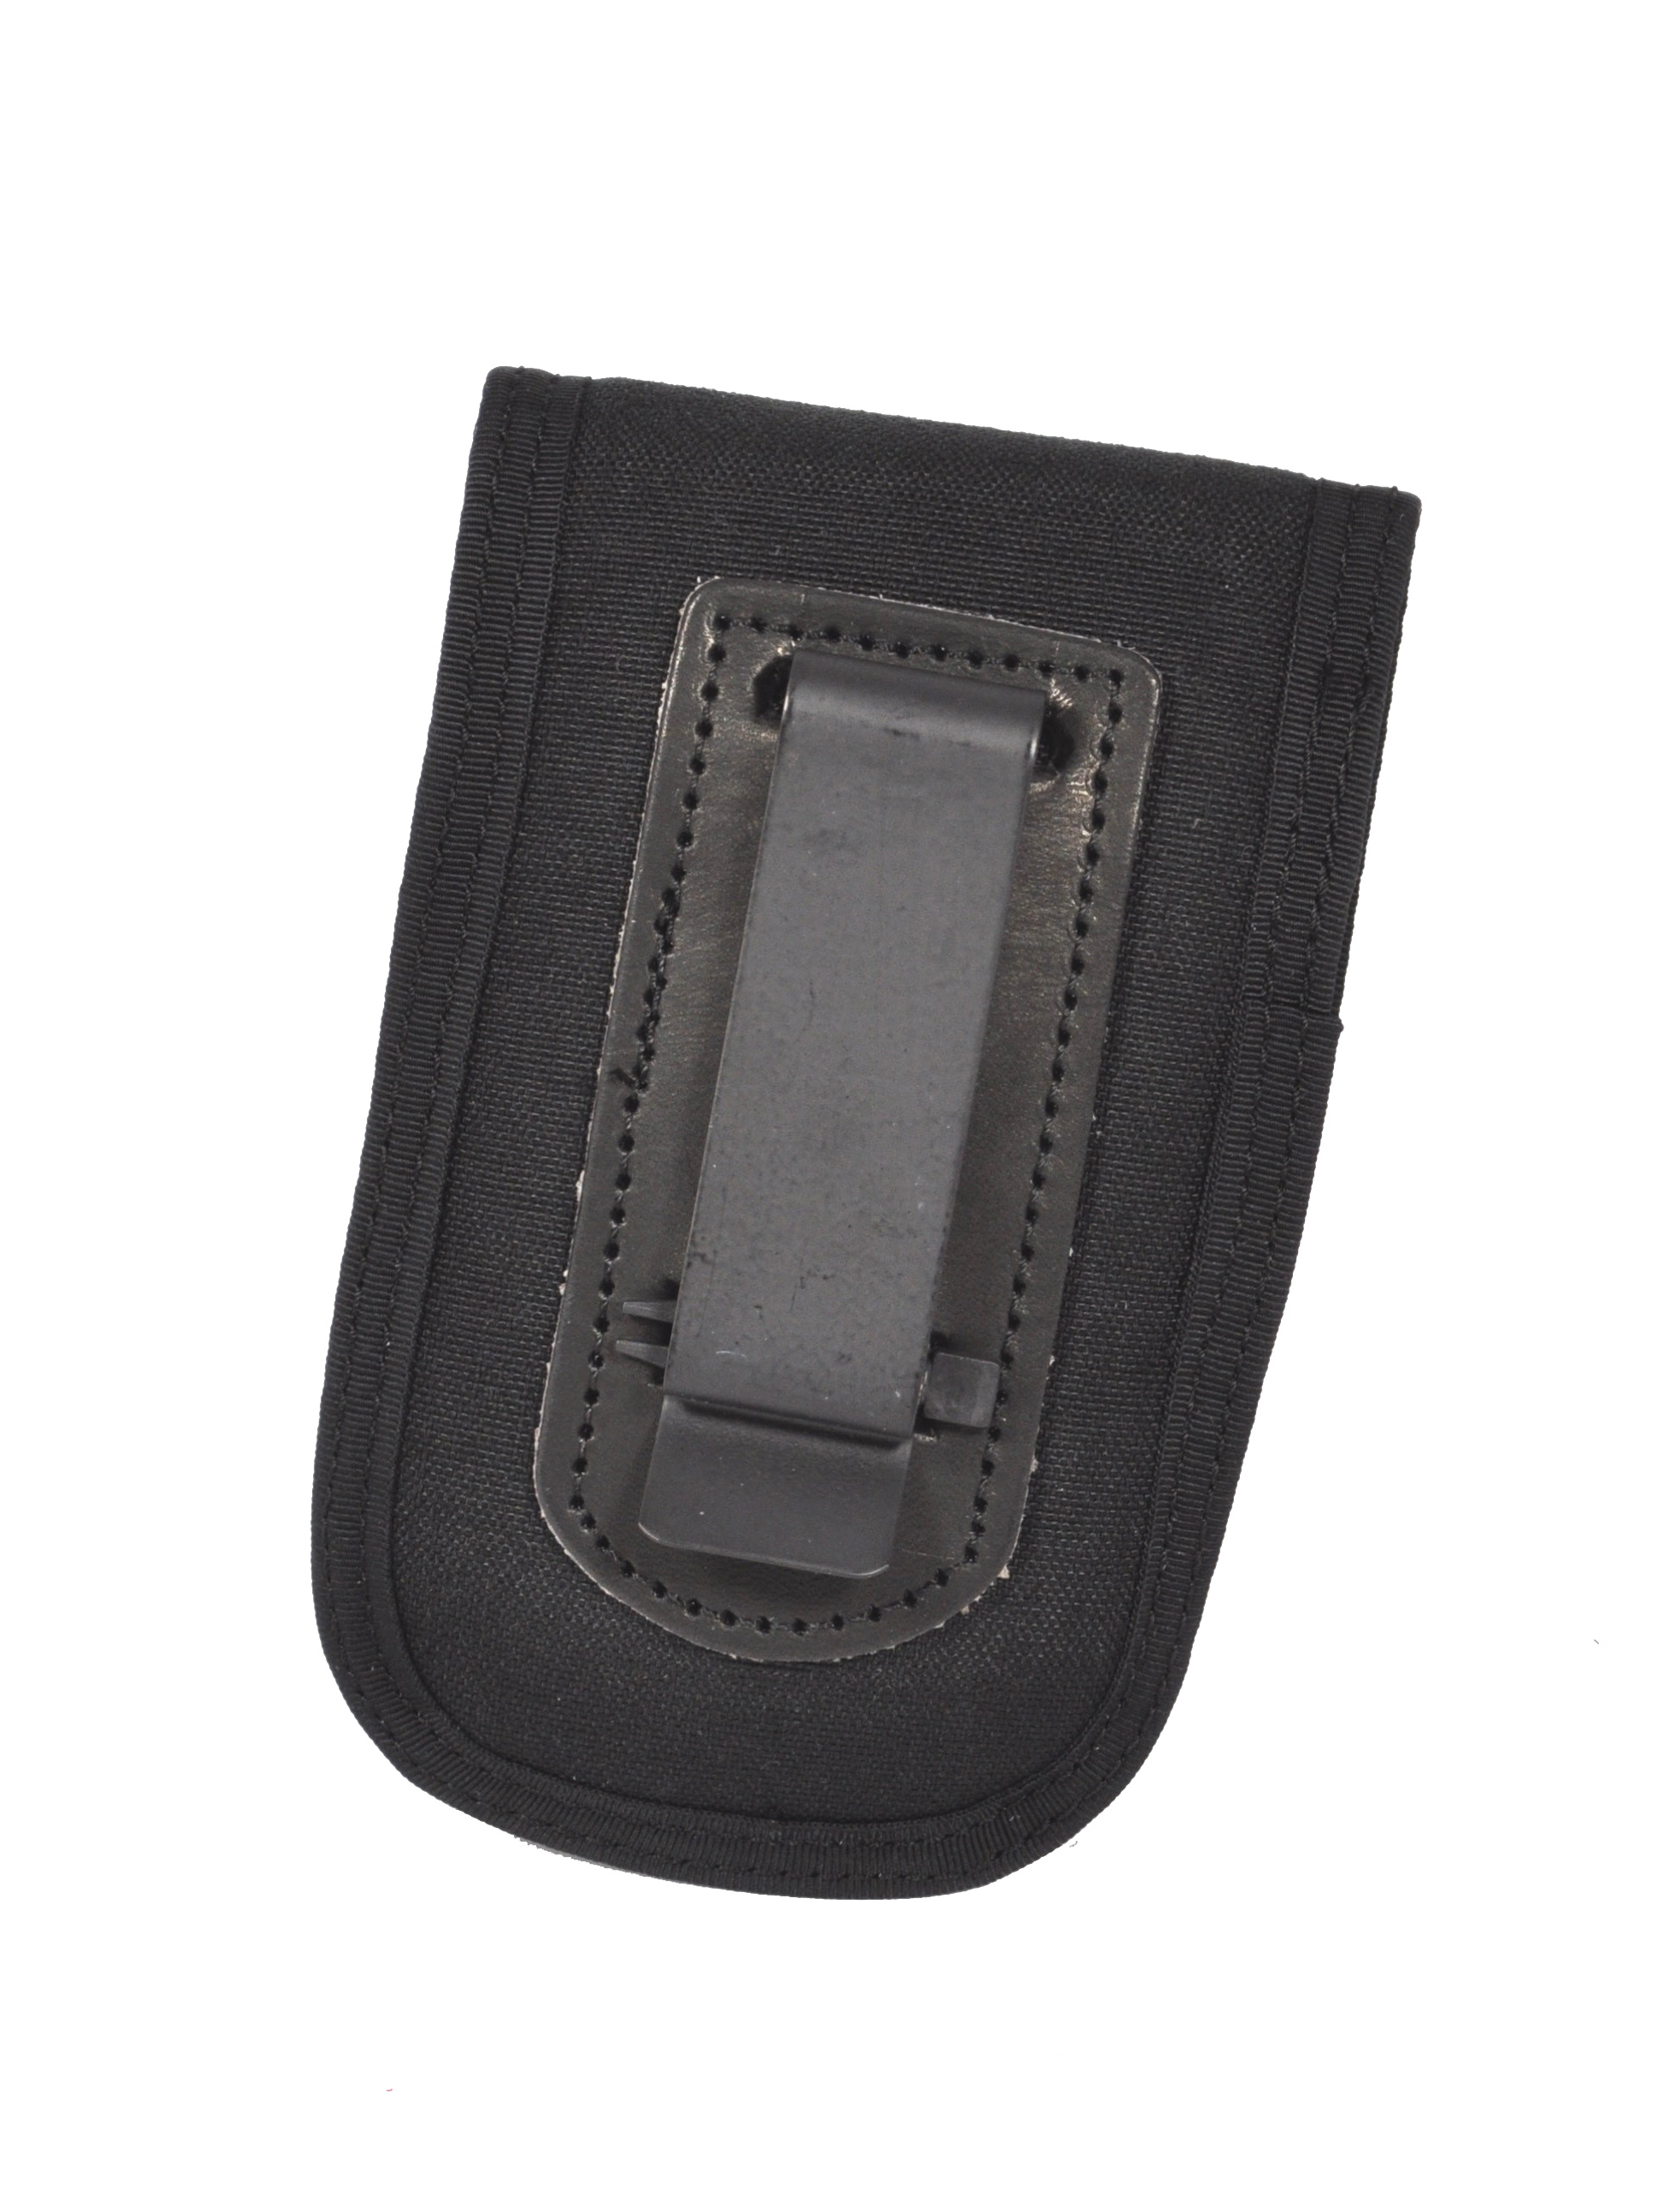 Ripoffs CO-333 Holster for Apple iPhone